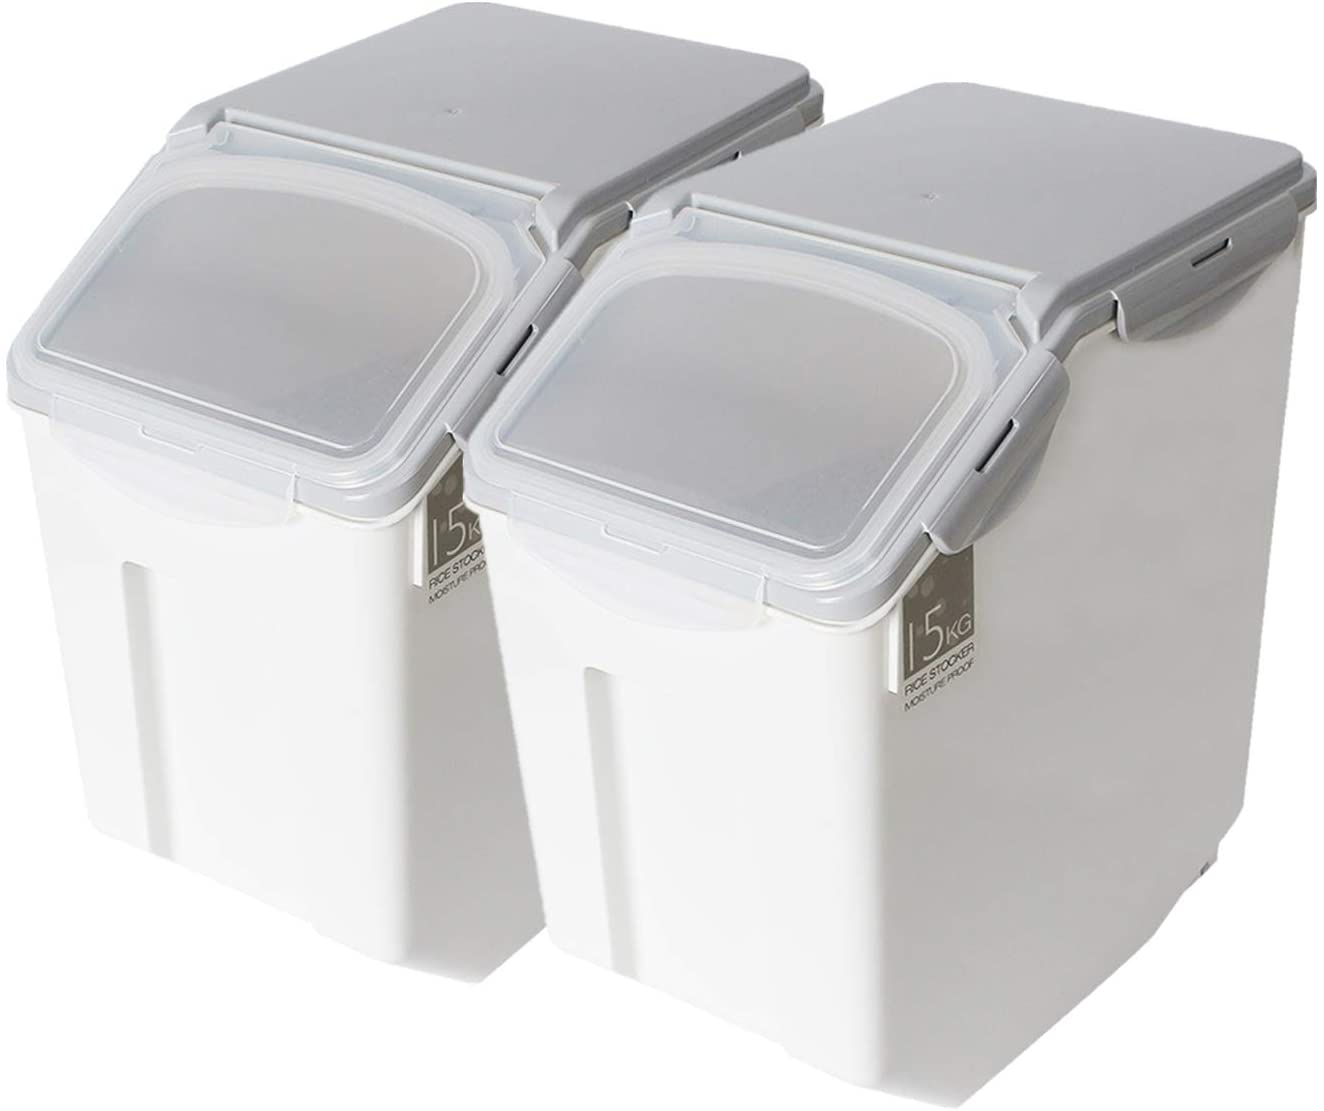 Kitchen Flour Box with Wheels Seal Locking Lid PP Rice Storage Container Food Containers ((33Ib / 80 cup),Pack-2)